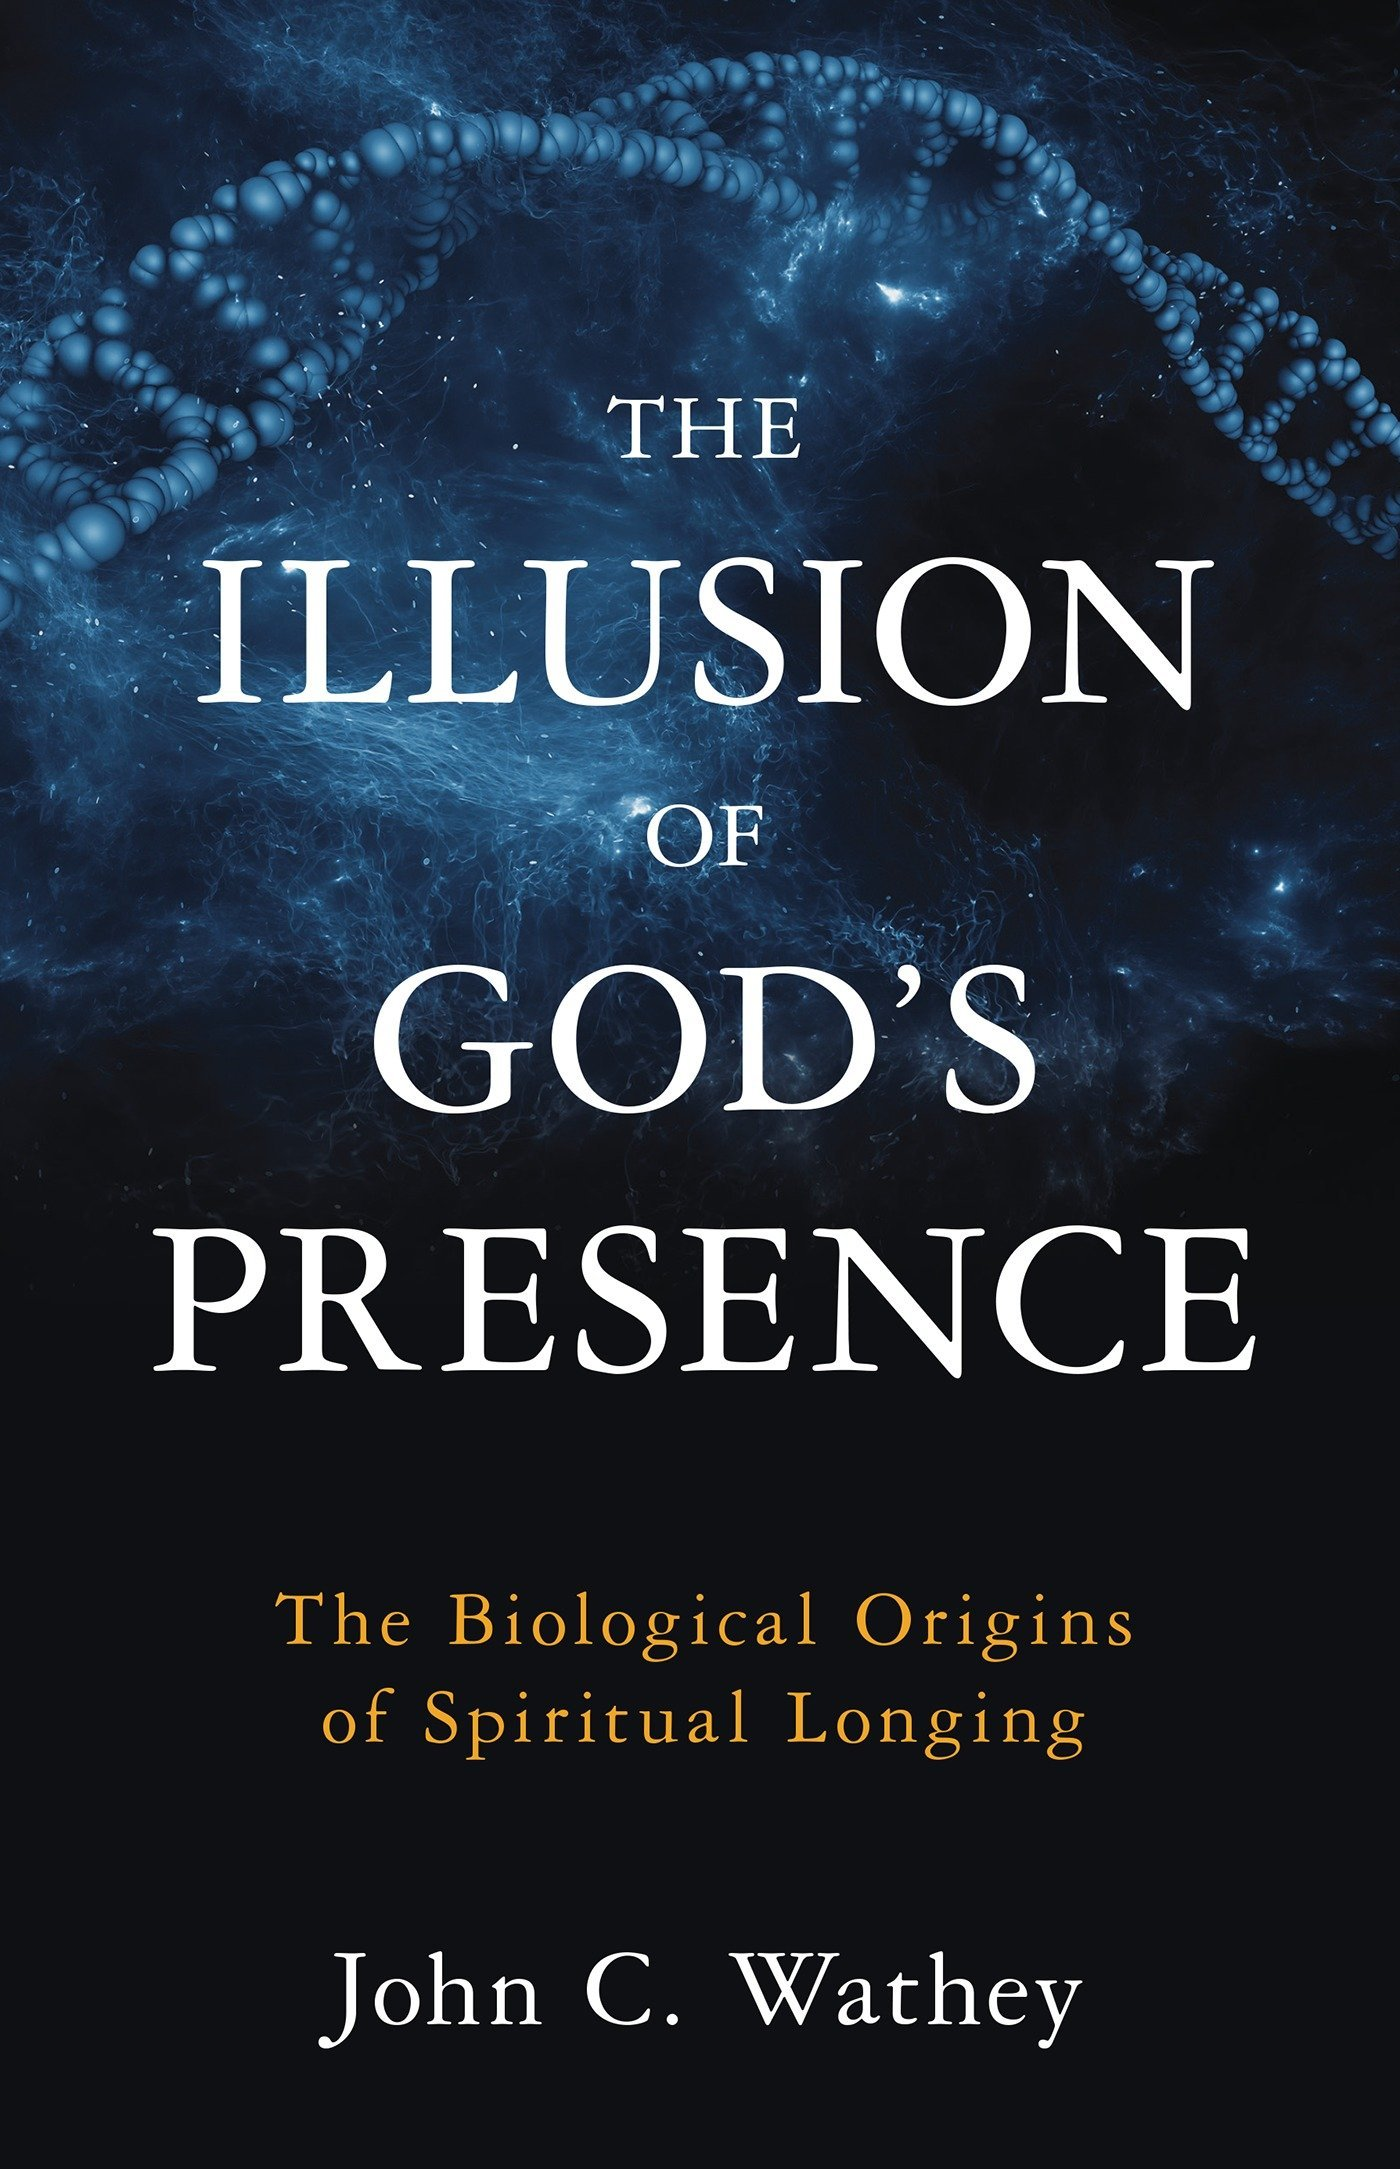 The Illusion of God's Presence: The Biological Origins of Spiritual Longing  Hardcover – January 12, 2016